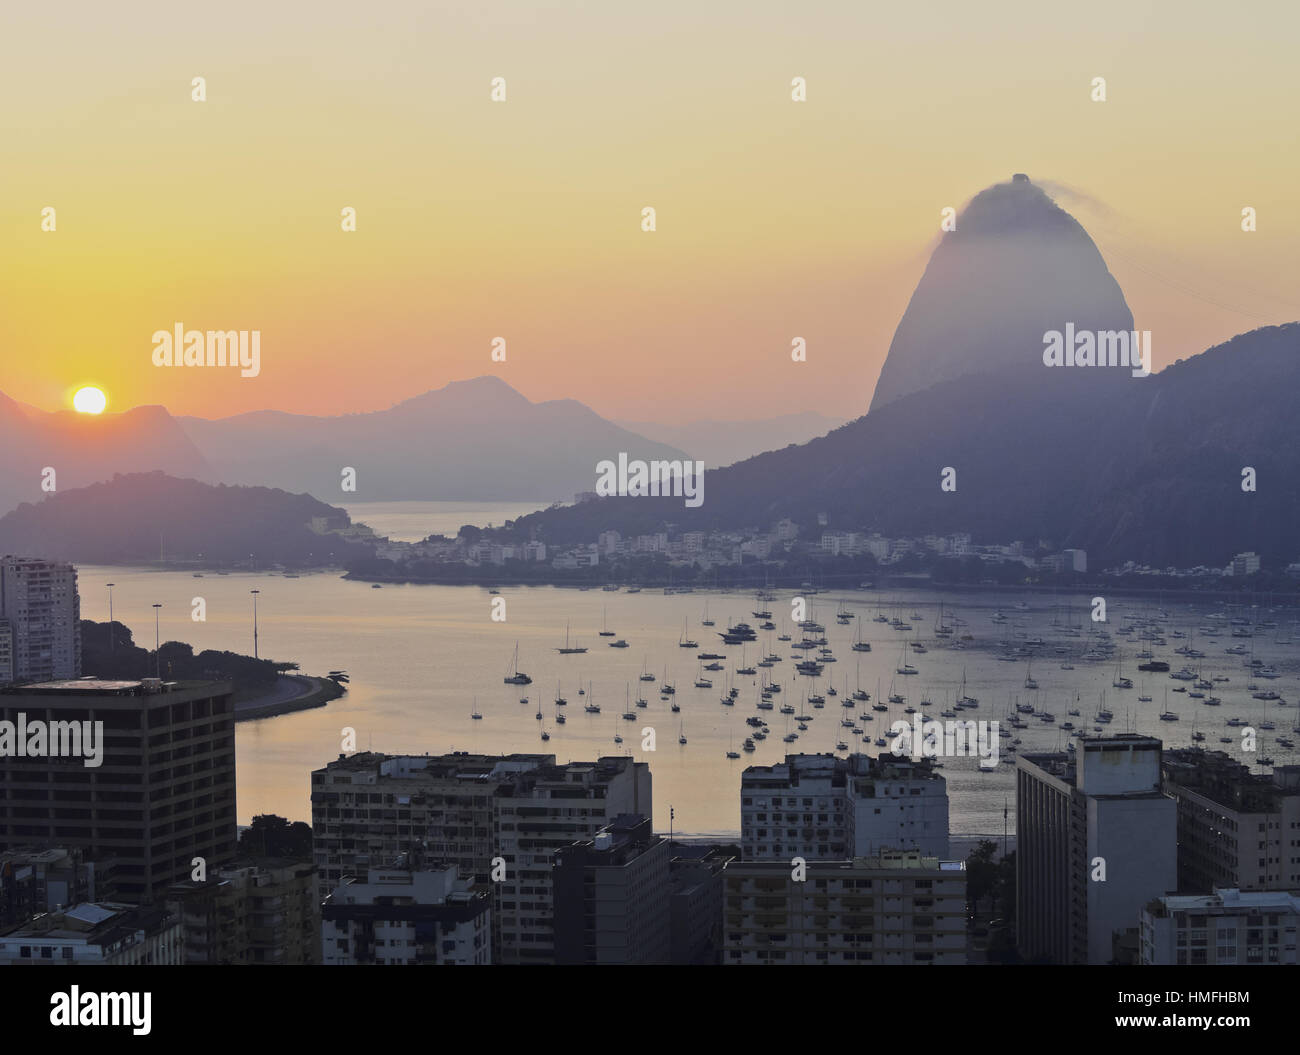 View over Botafogo Neighbourhood towards the Sugarloaf Mountain at sunrise, Rio de Janeiro, Brazil, South America - Stock Image